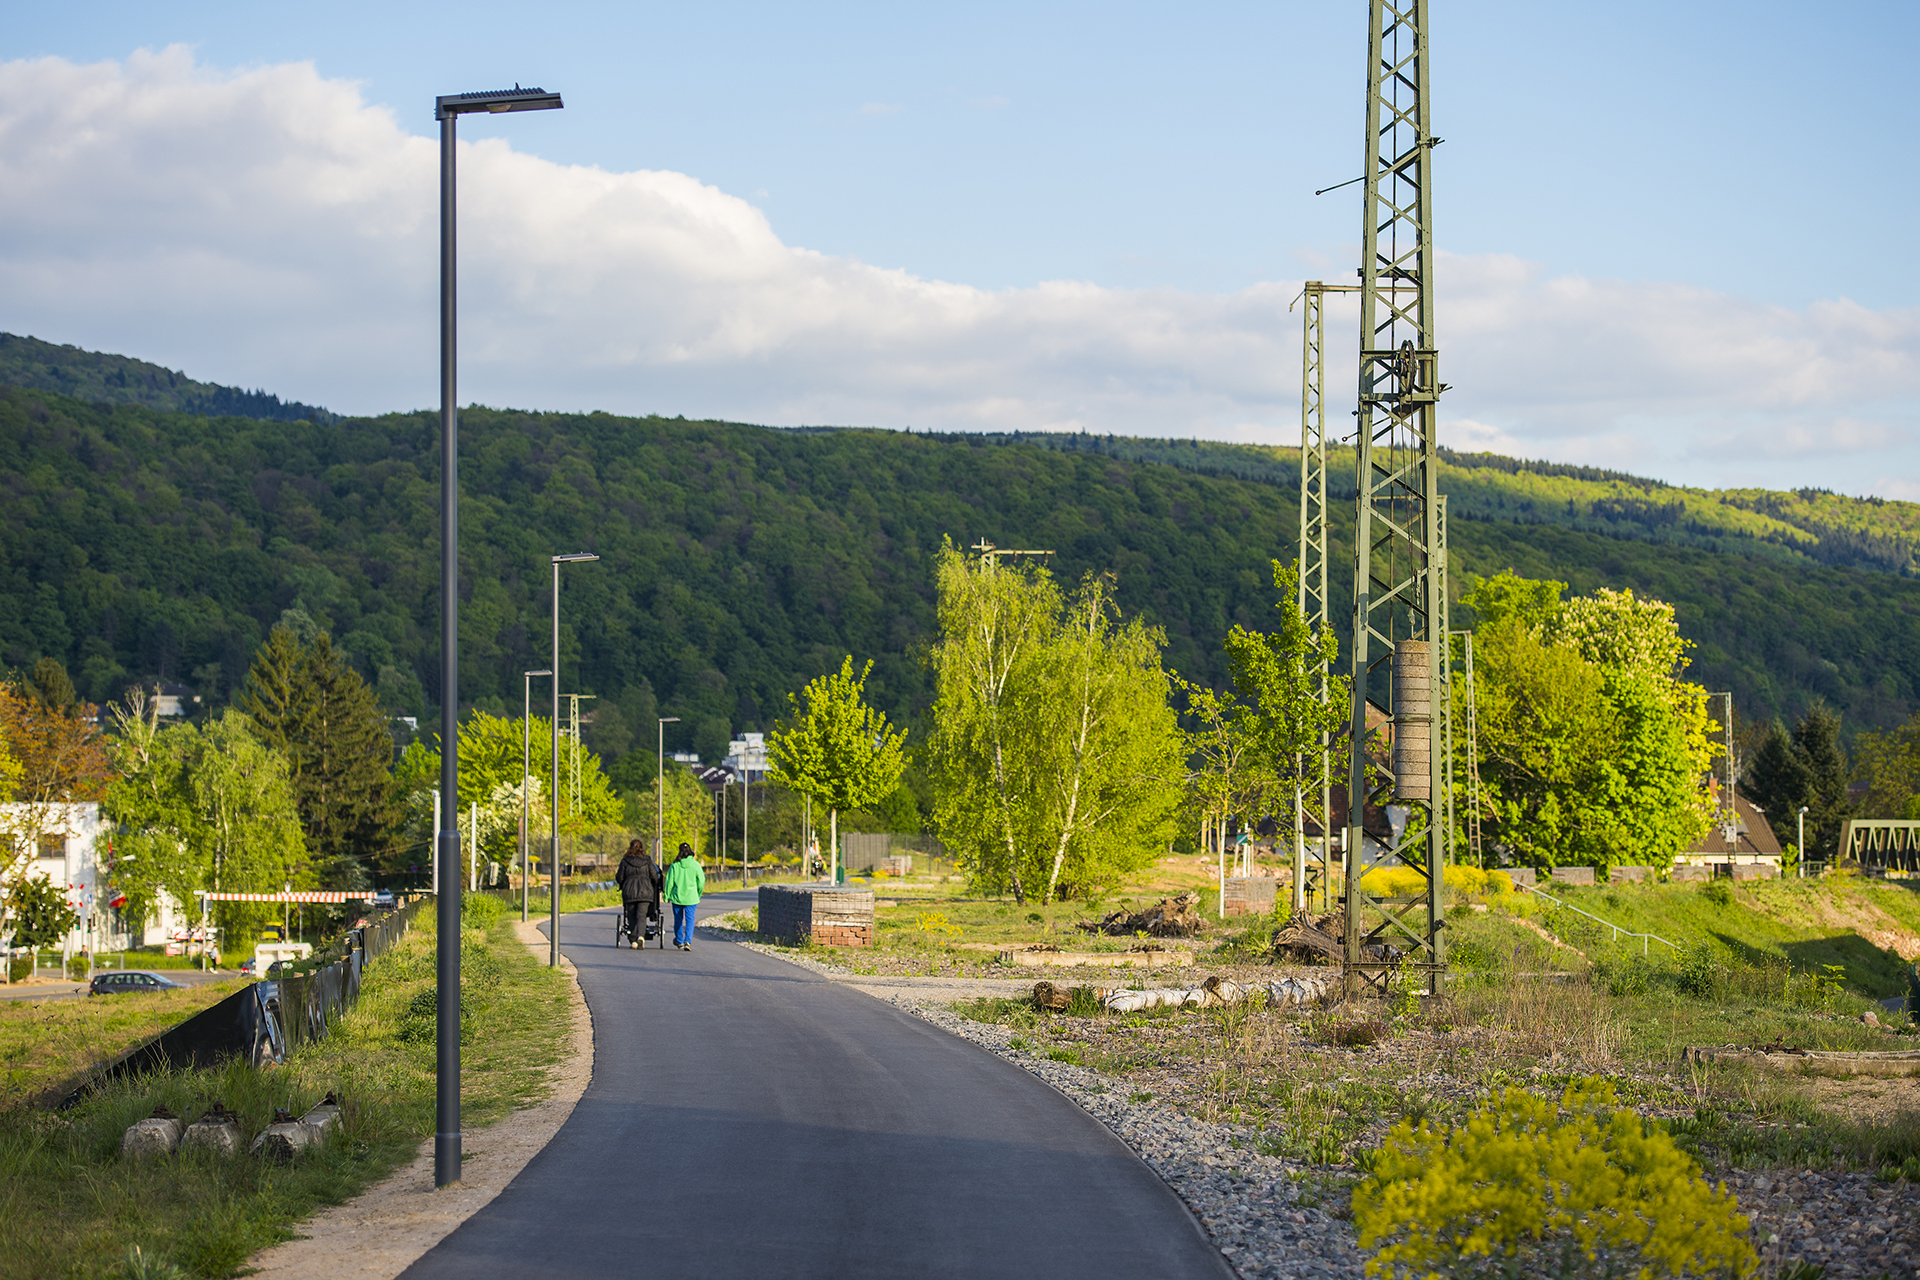 Piano street light fitted with PIR sensors provides sustainable lighting to protect local wildlife on this bike path